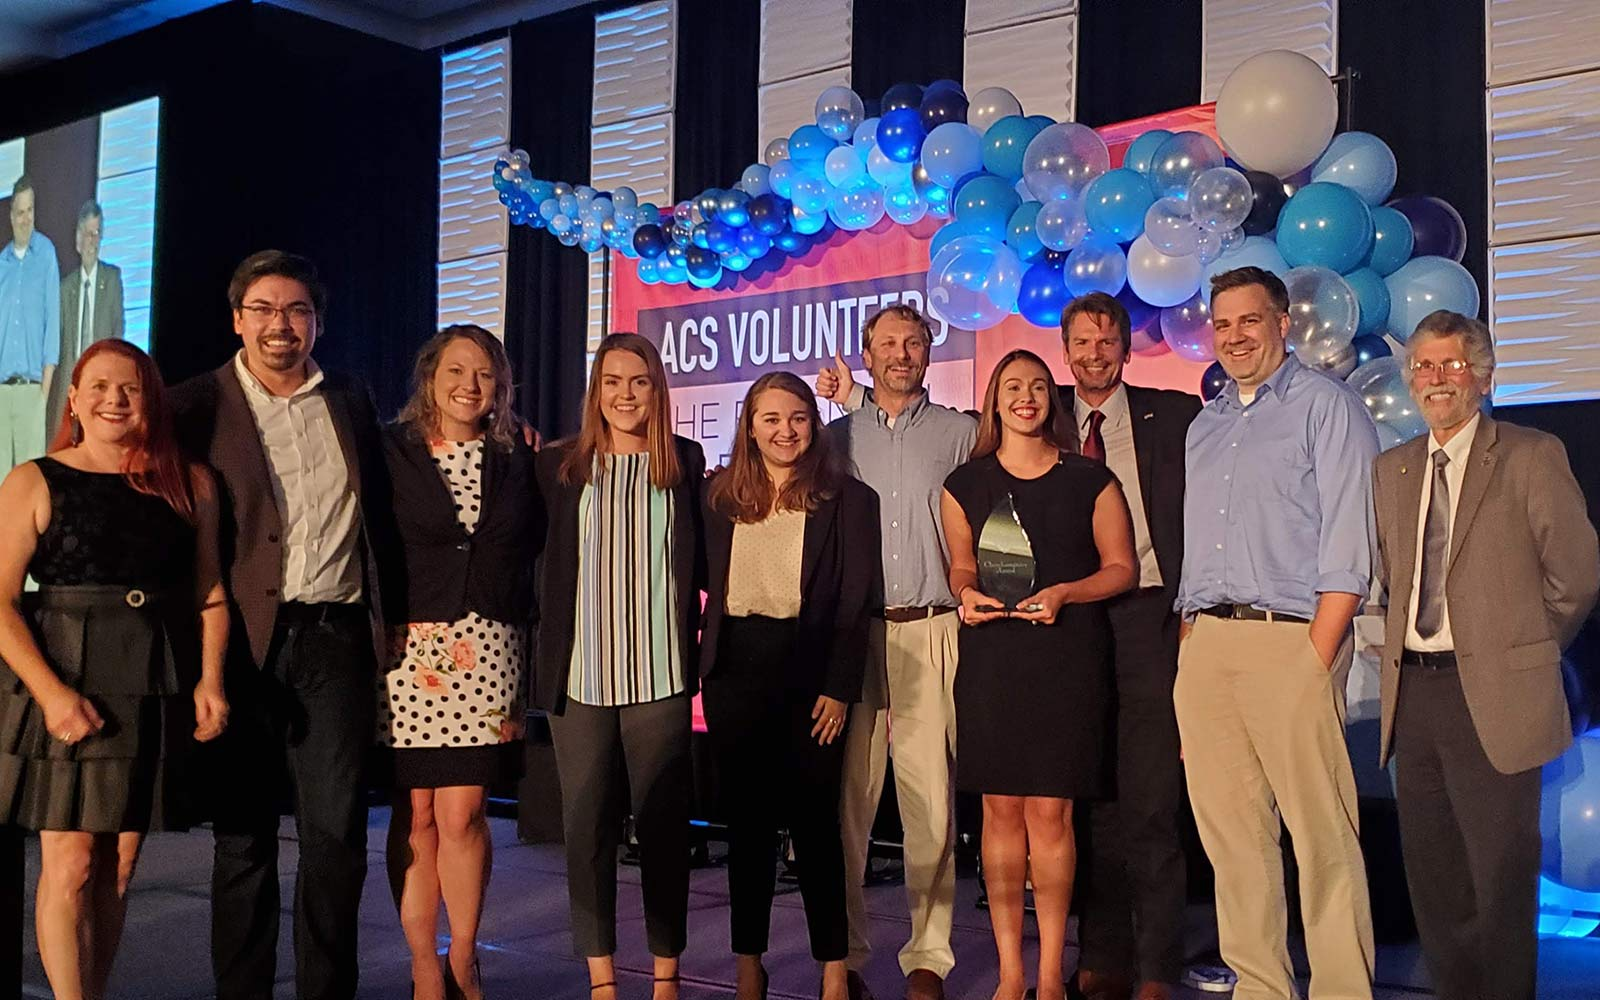 Msu Student Info >> Msu Student Chemistry Group Receives National Award For